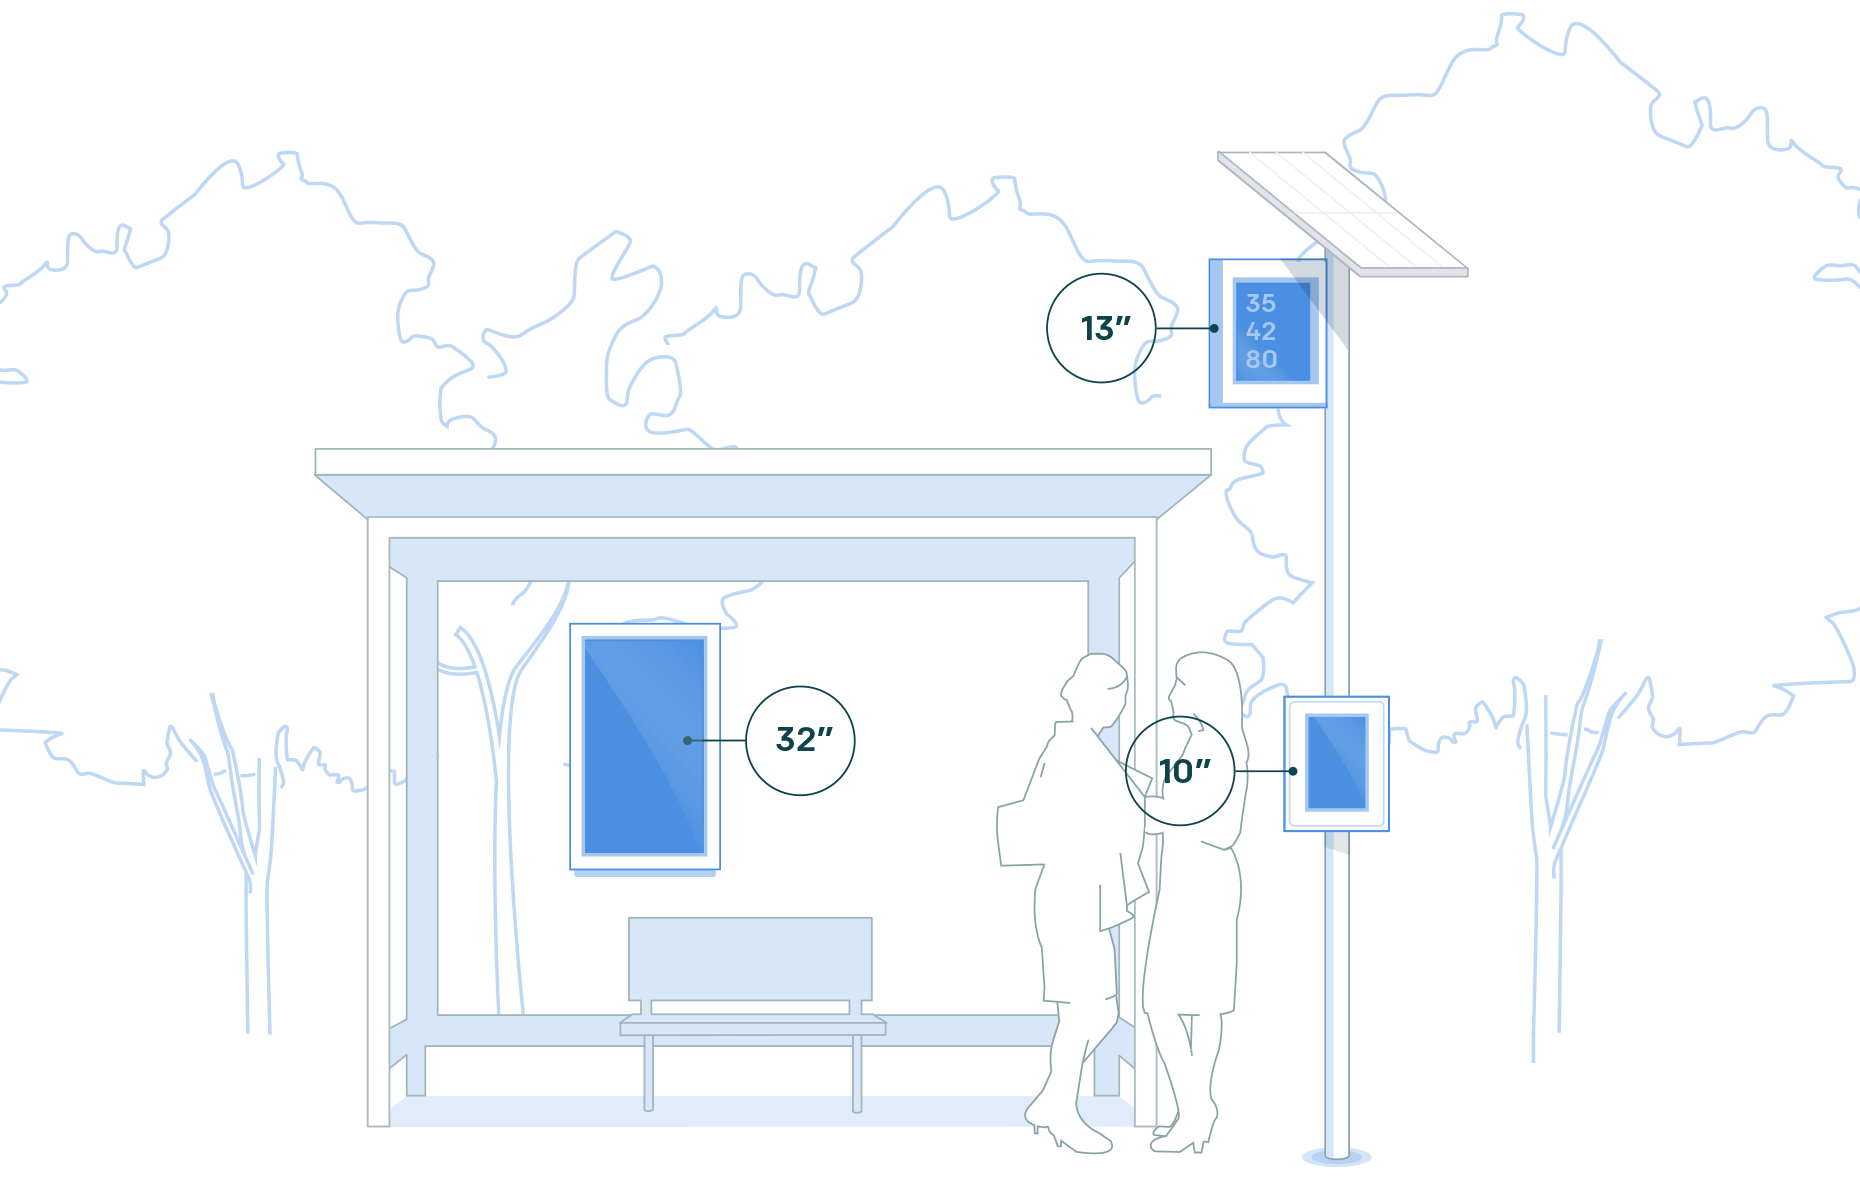 illustration of the three Digital Bus Stop ePaper display sizes. 32-inch model on shelter. 10-inch and 13-inch models on a solar-powered pylon